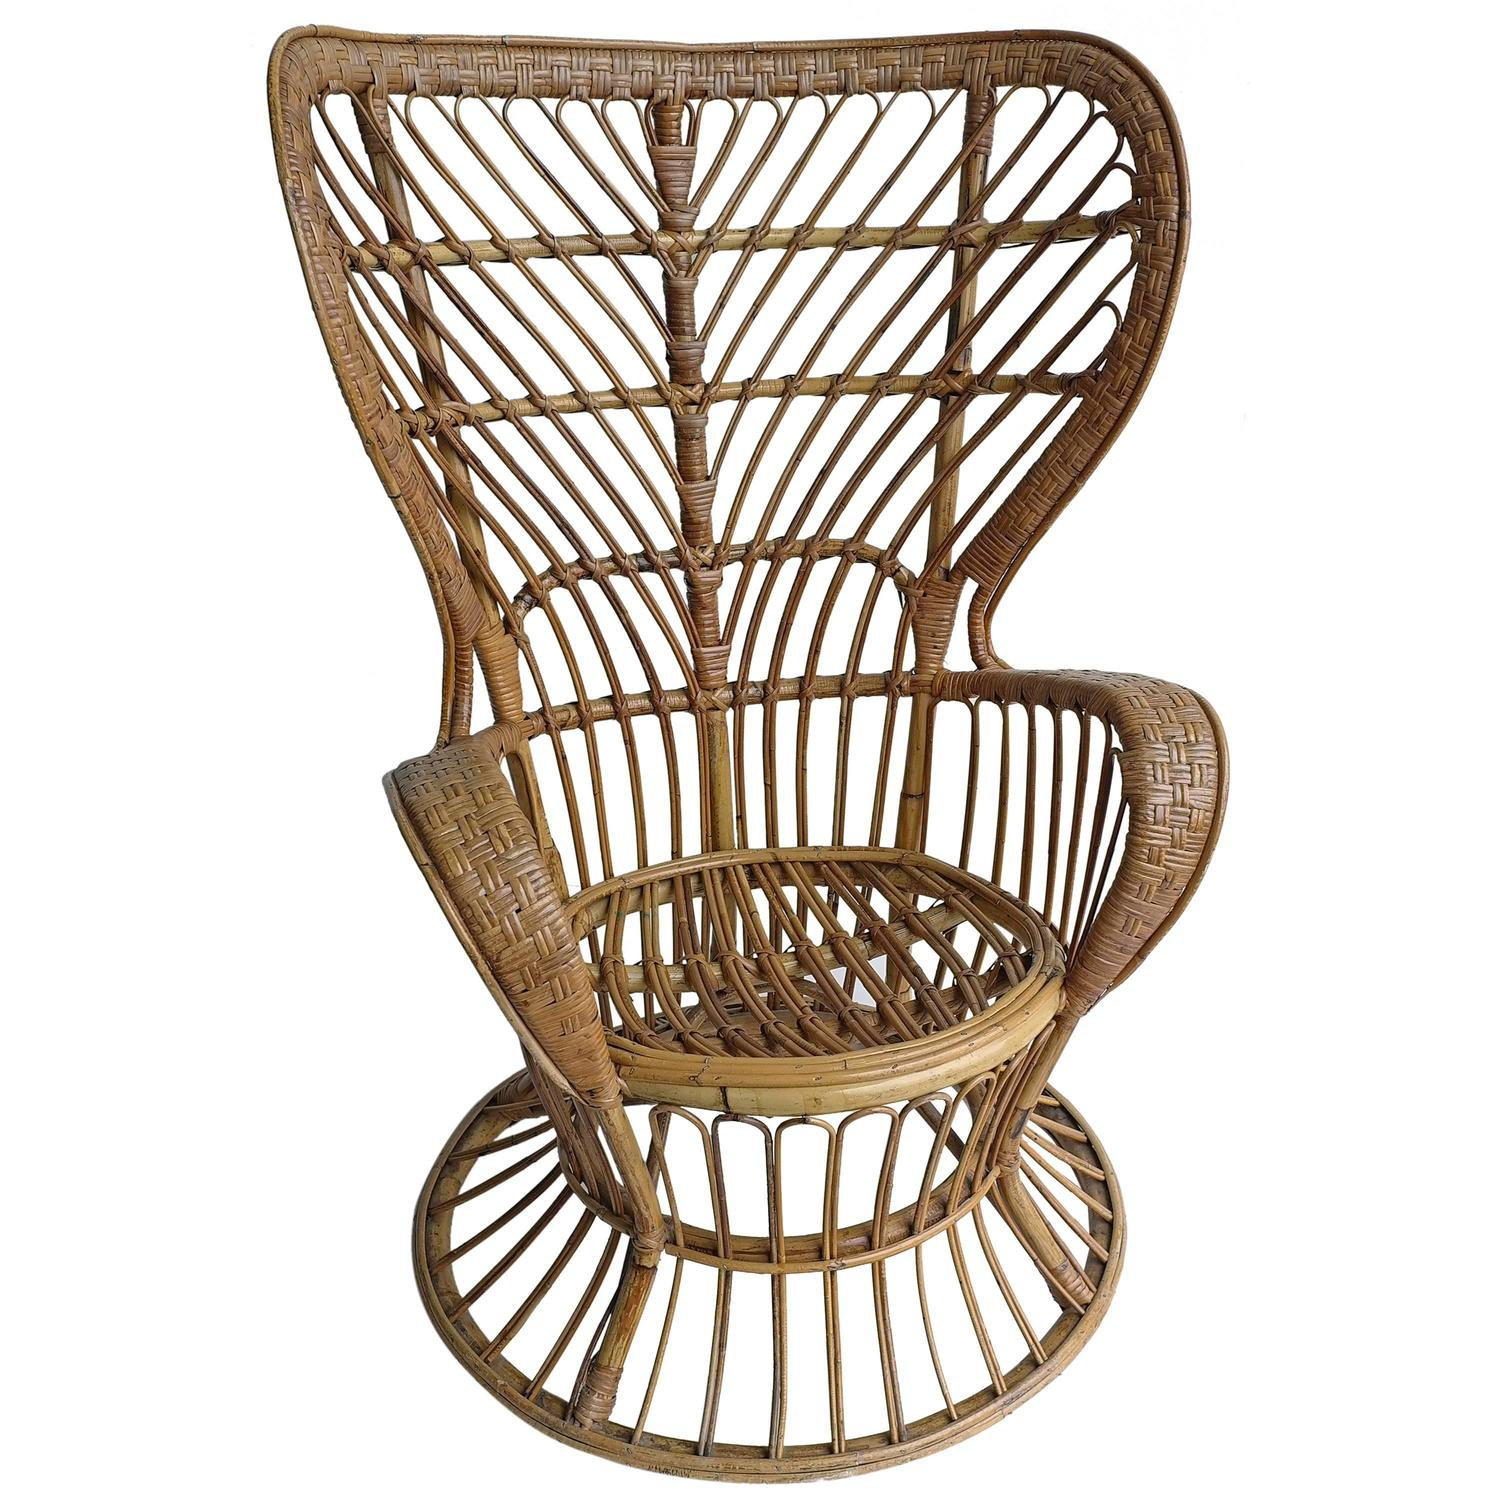 High Wingback Rattan Chair by Gio Ponti and Lio Carminati Italy